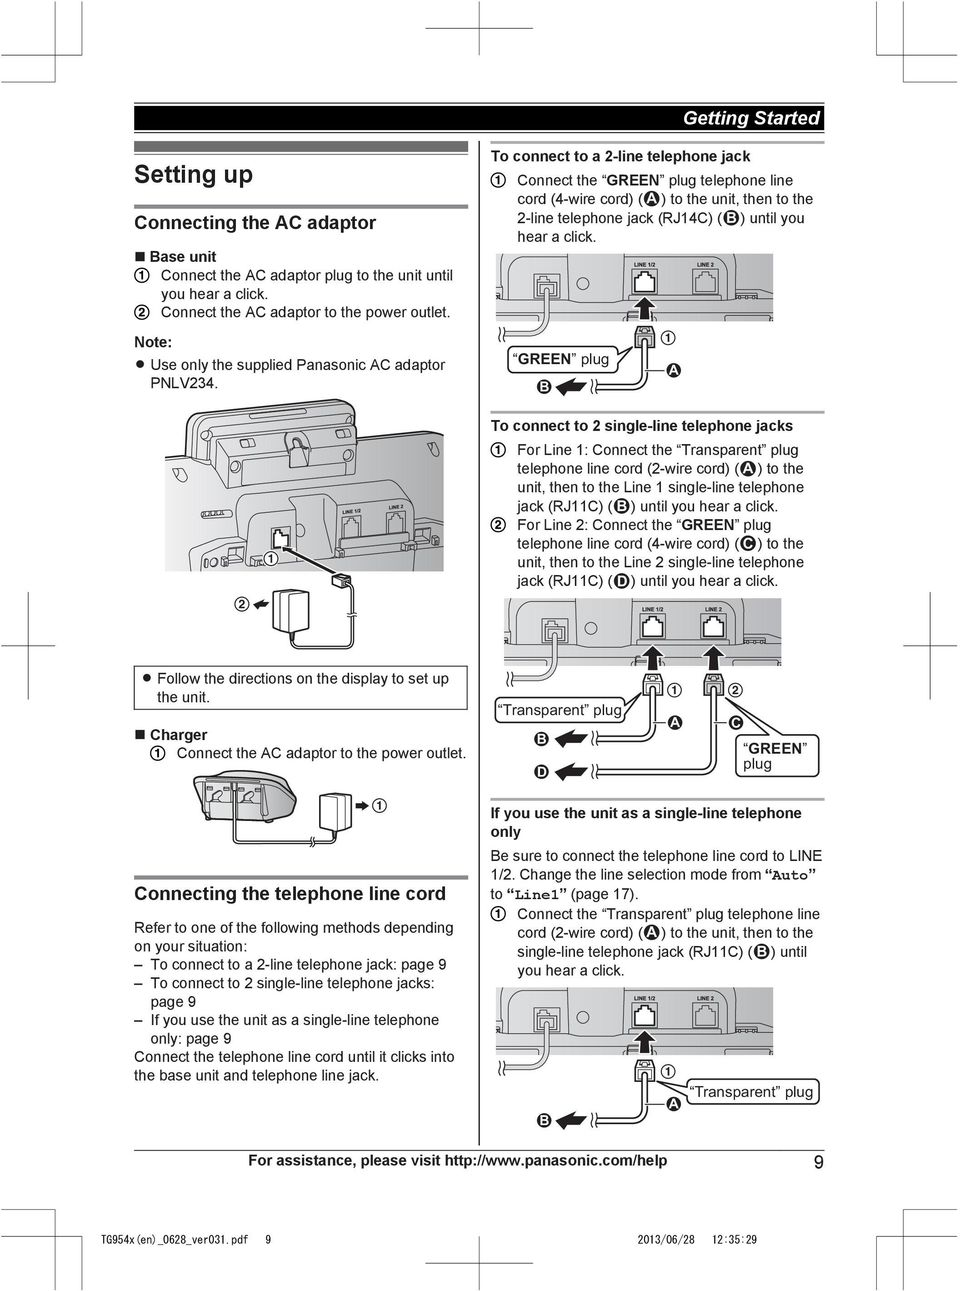 Before Initial Use See Getting Started On Page 9 Pdf How To Hook Up Phone Jack Connect A 2 Line Telephone The Green Plug Cord